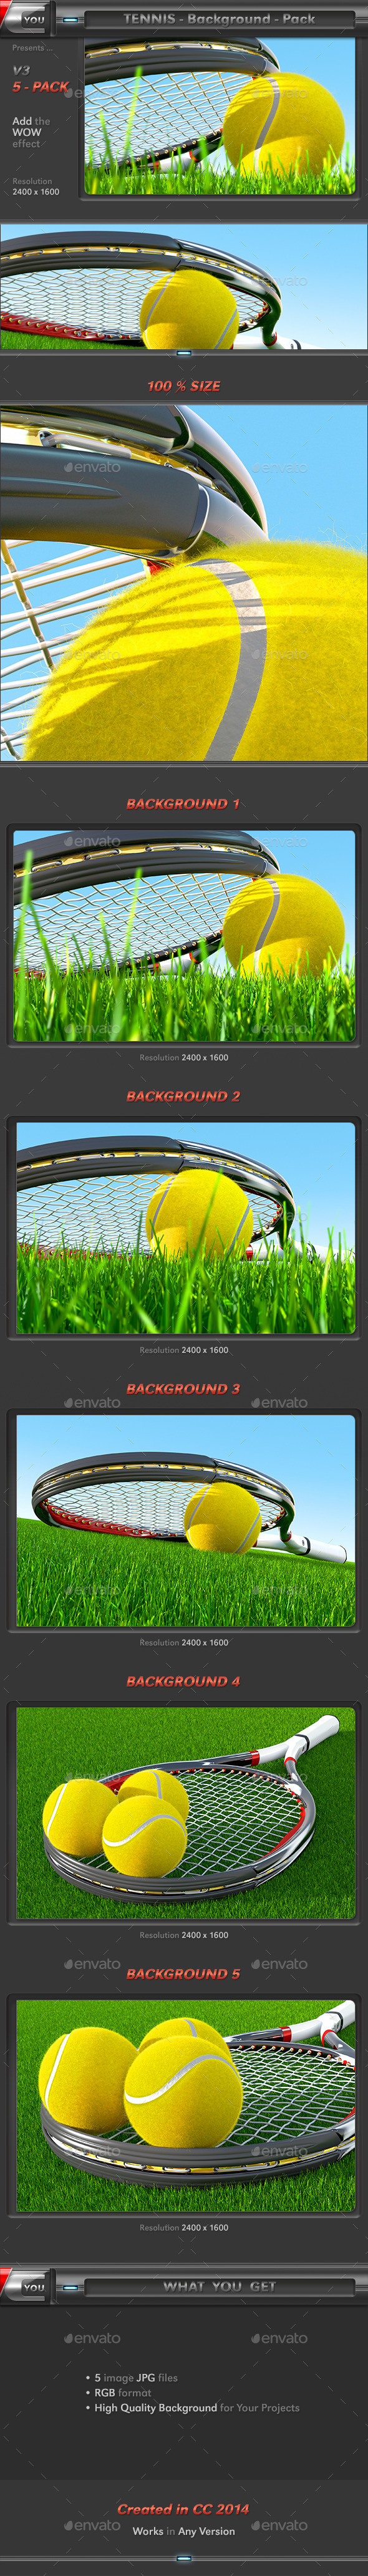 GraphicRiver Tennis Background Pack 3 11891666